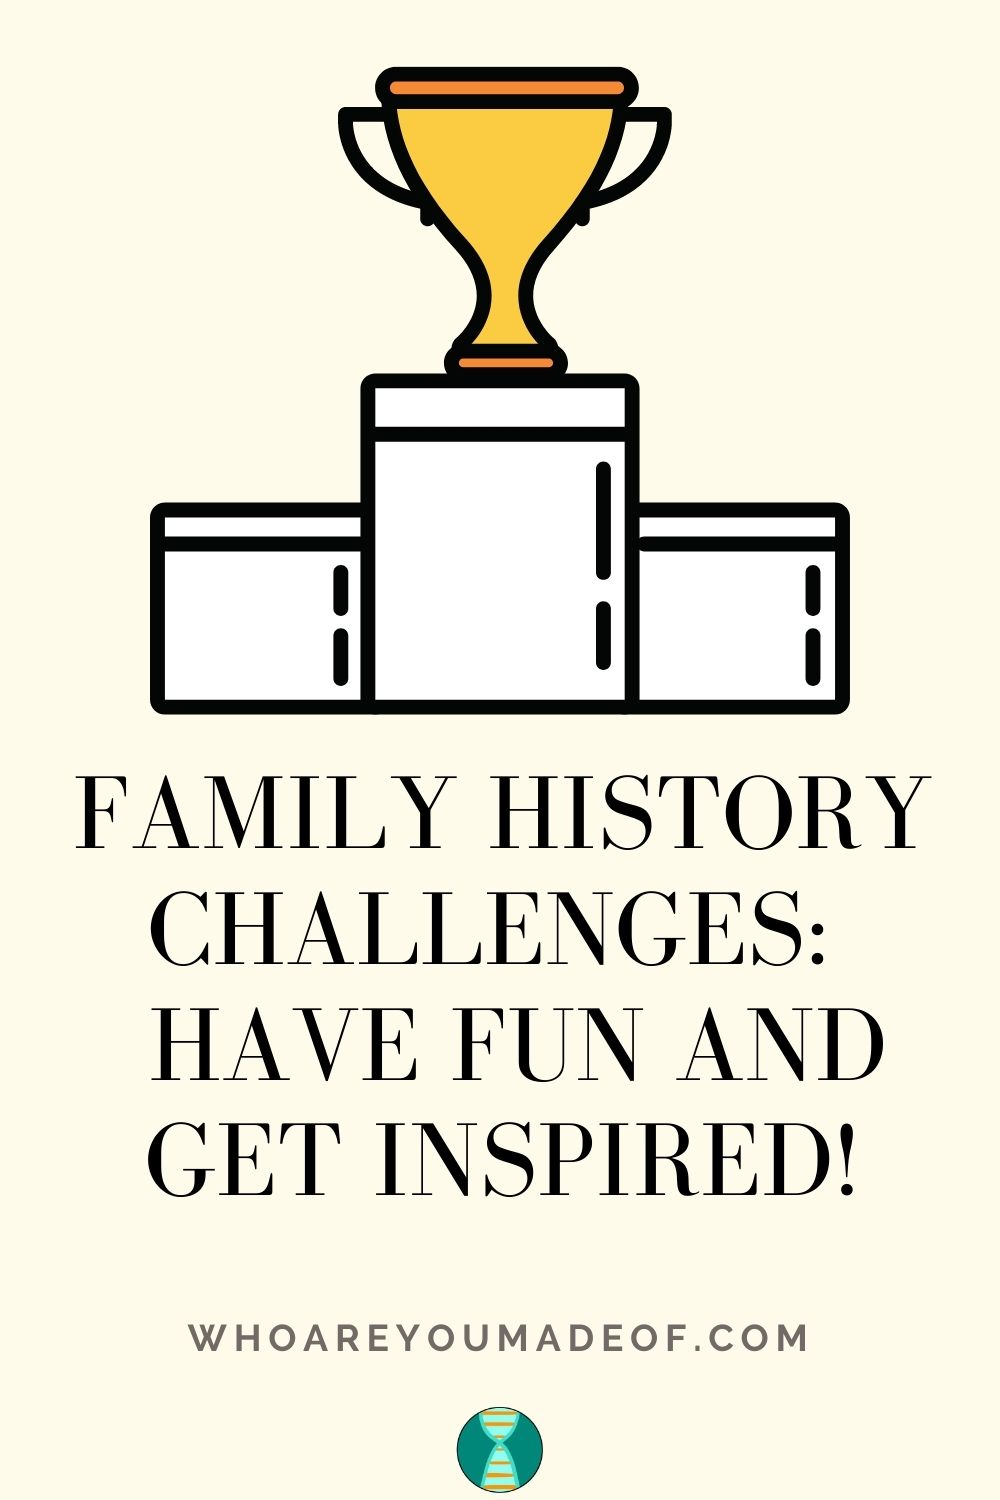 Family History Challenges Have Fun and Get Inspired!  Pinterest graphic